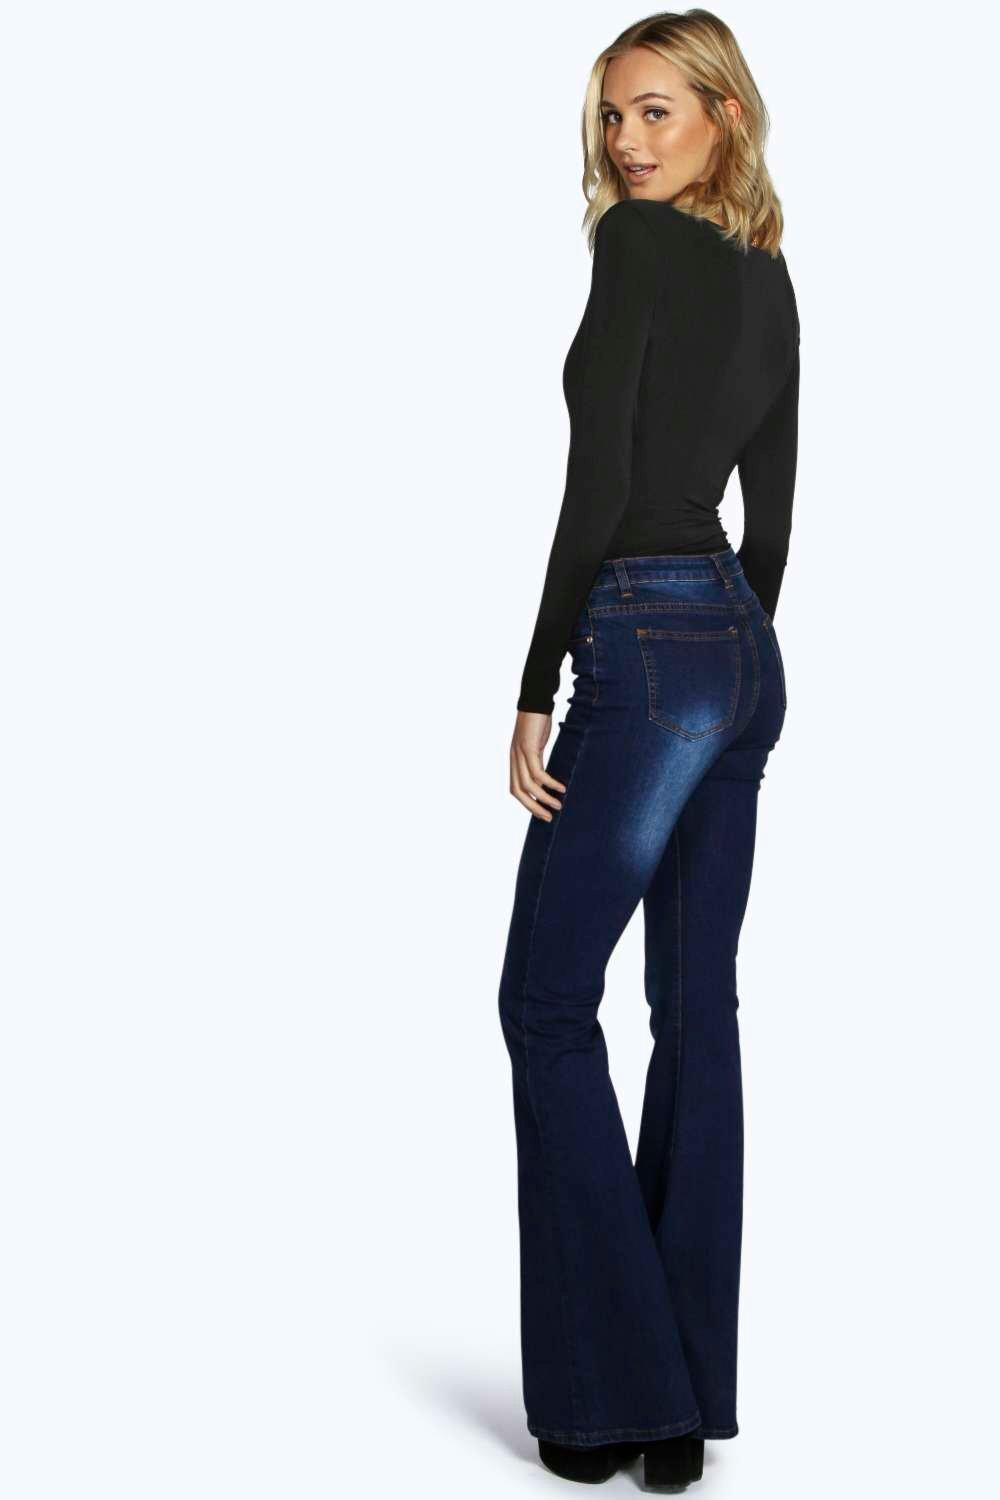 Shop American Eagle Outfitters for men's and women's jeans, T's, shoes and more. Women's Jeans View All Long Jeans For Women. Kick Bootcut Jean Regular Price $ Sale Price $